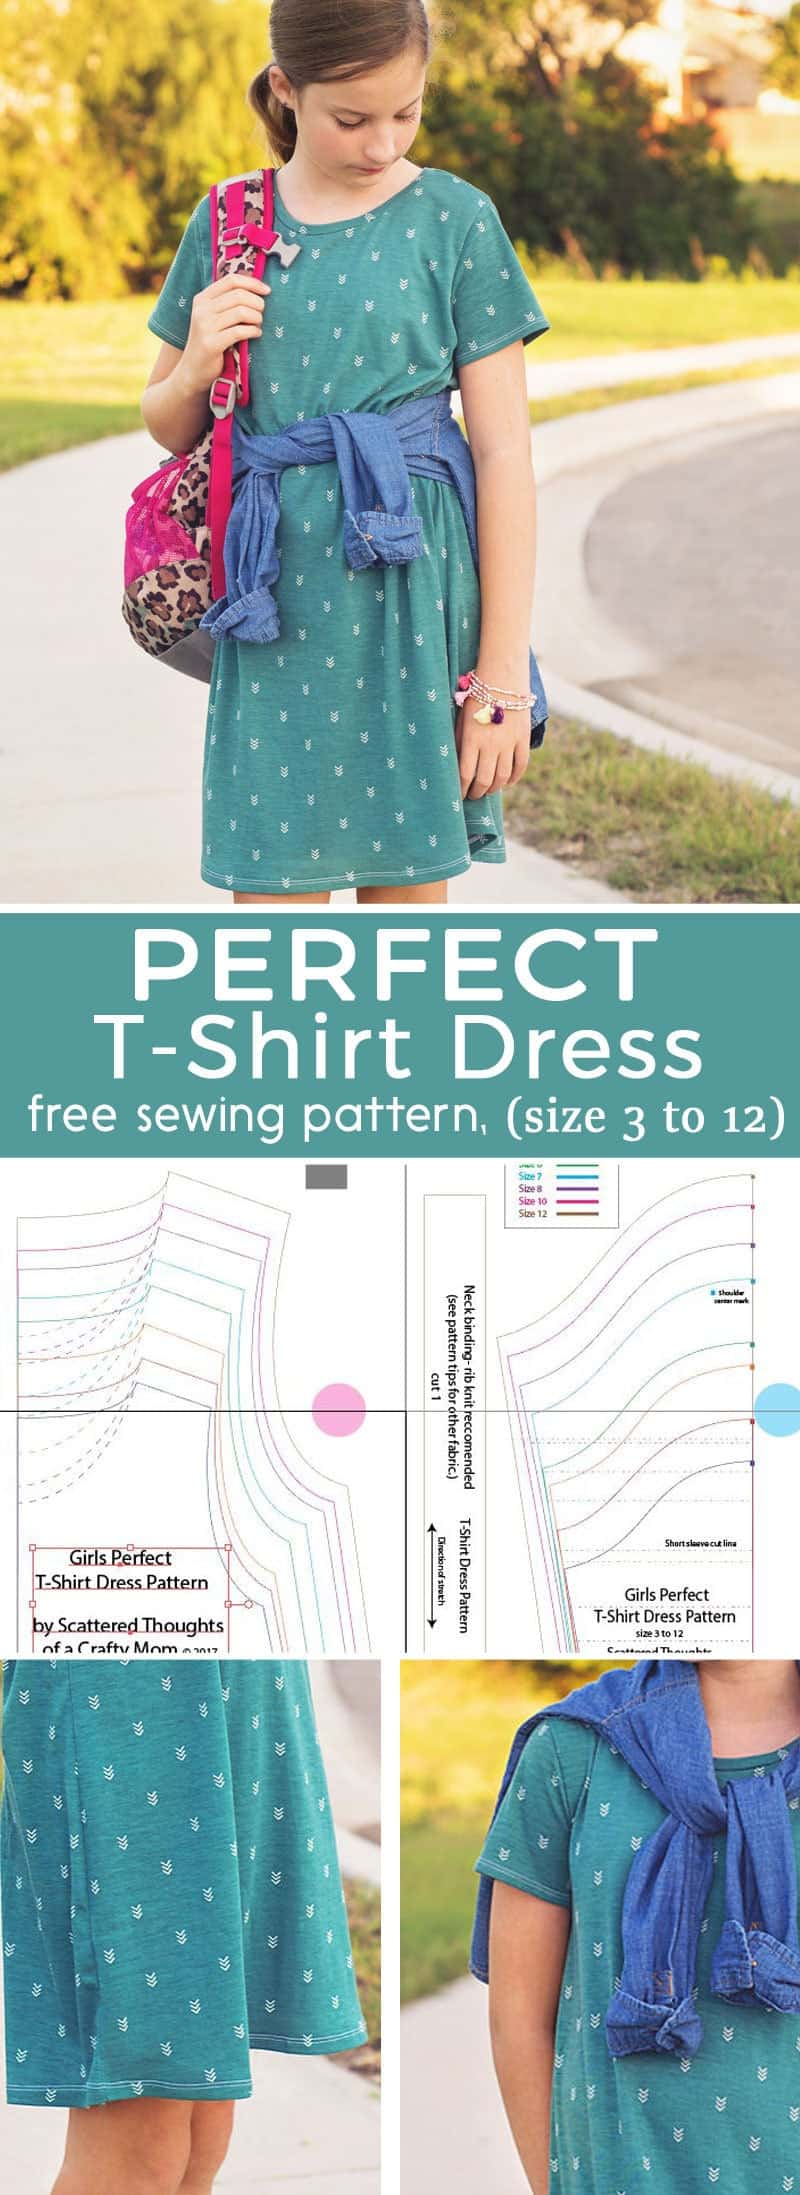 The Perfect T-shirt Dress, a free pdf sewing pattern for girls, sz 3 to 12